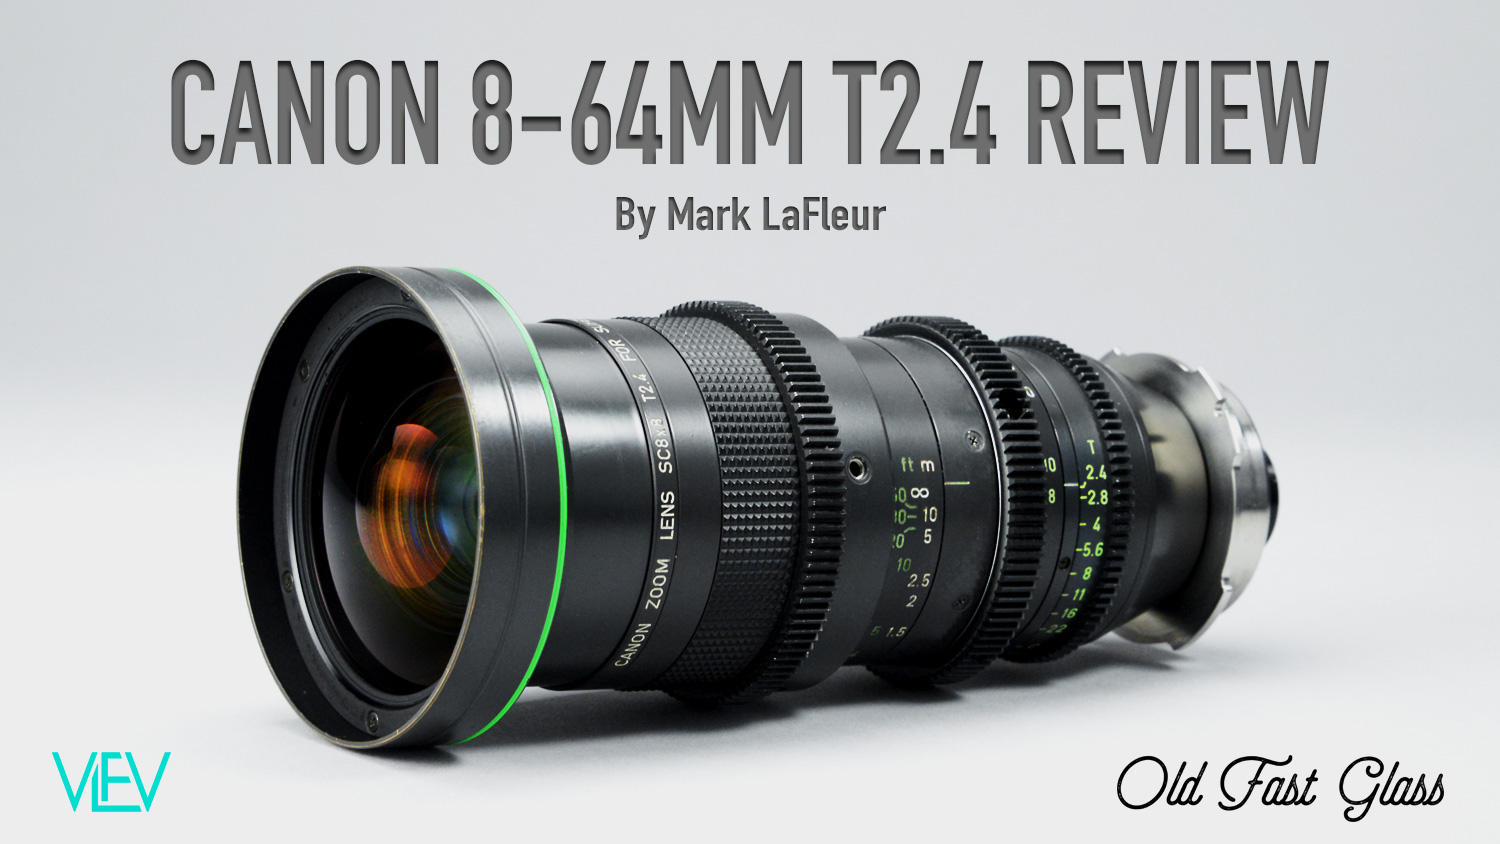 Canon 8-64mm T2.4 Review